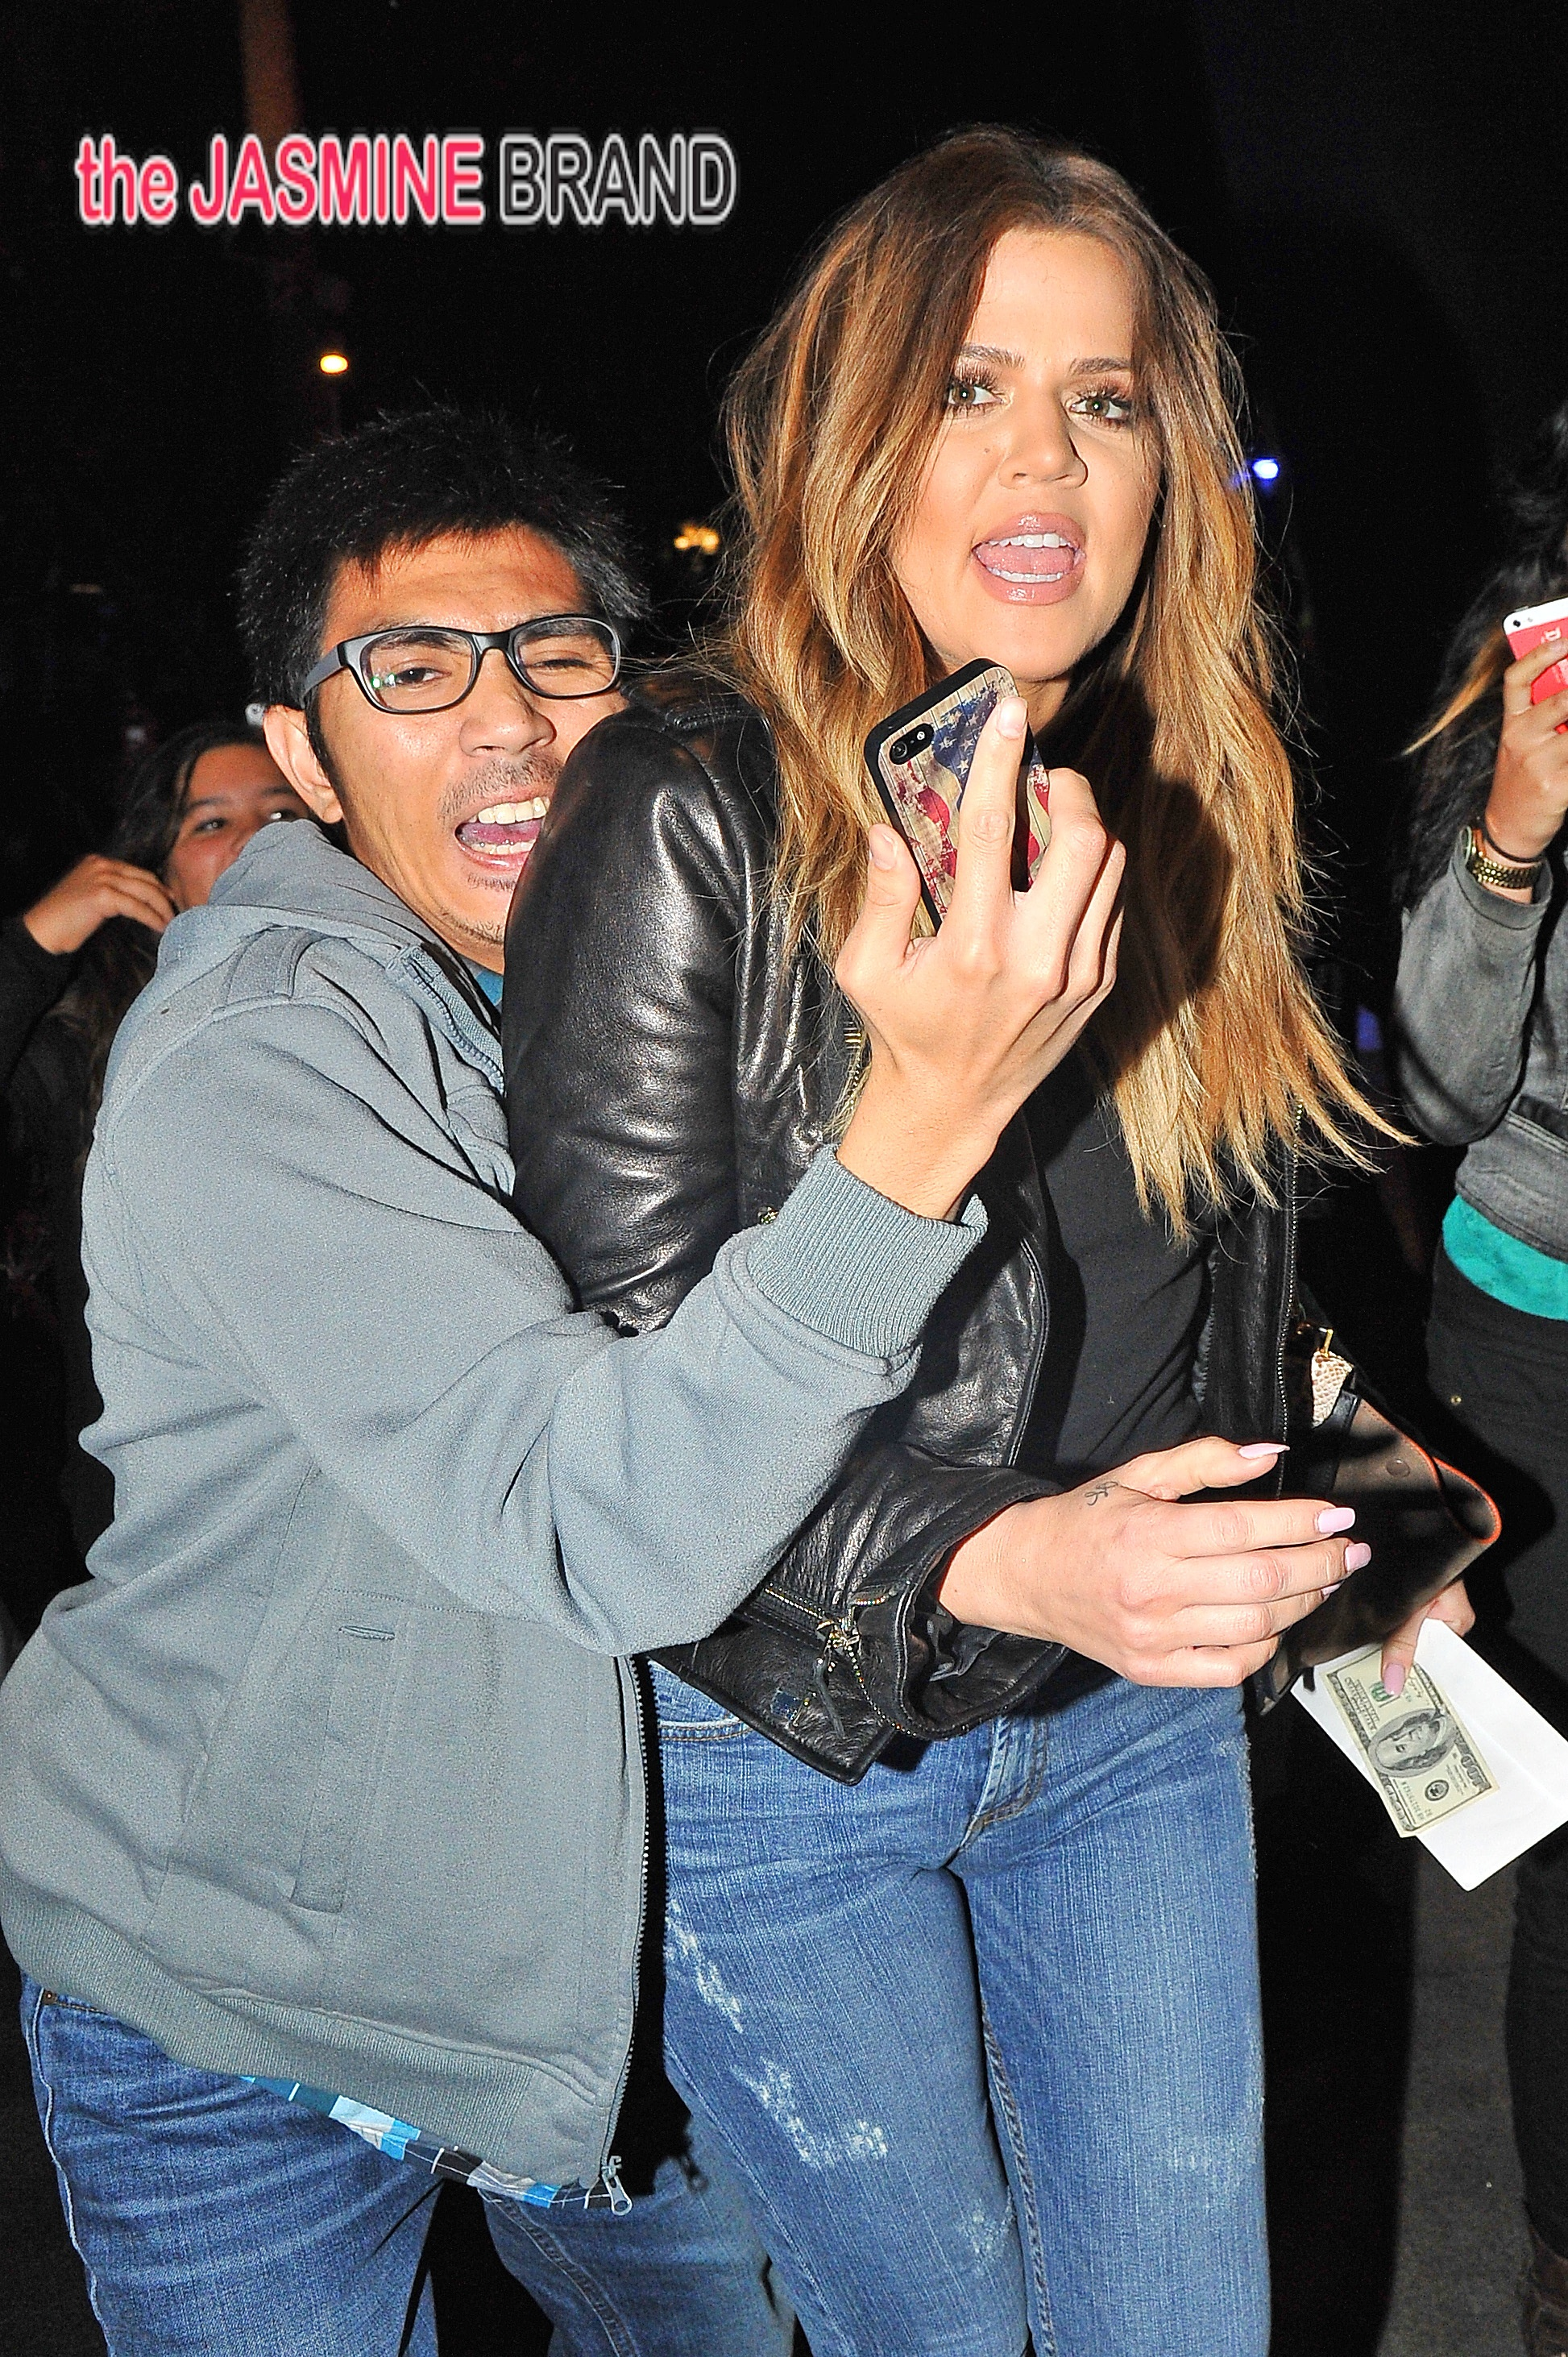 Khloe Kardashian is grabbed by an over excited fan